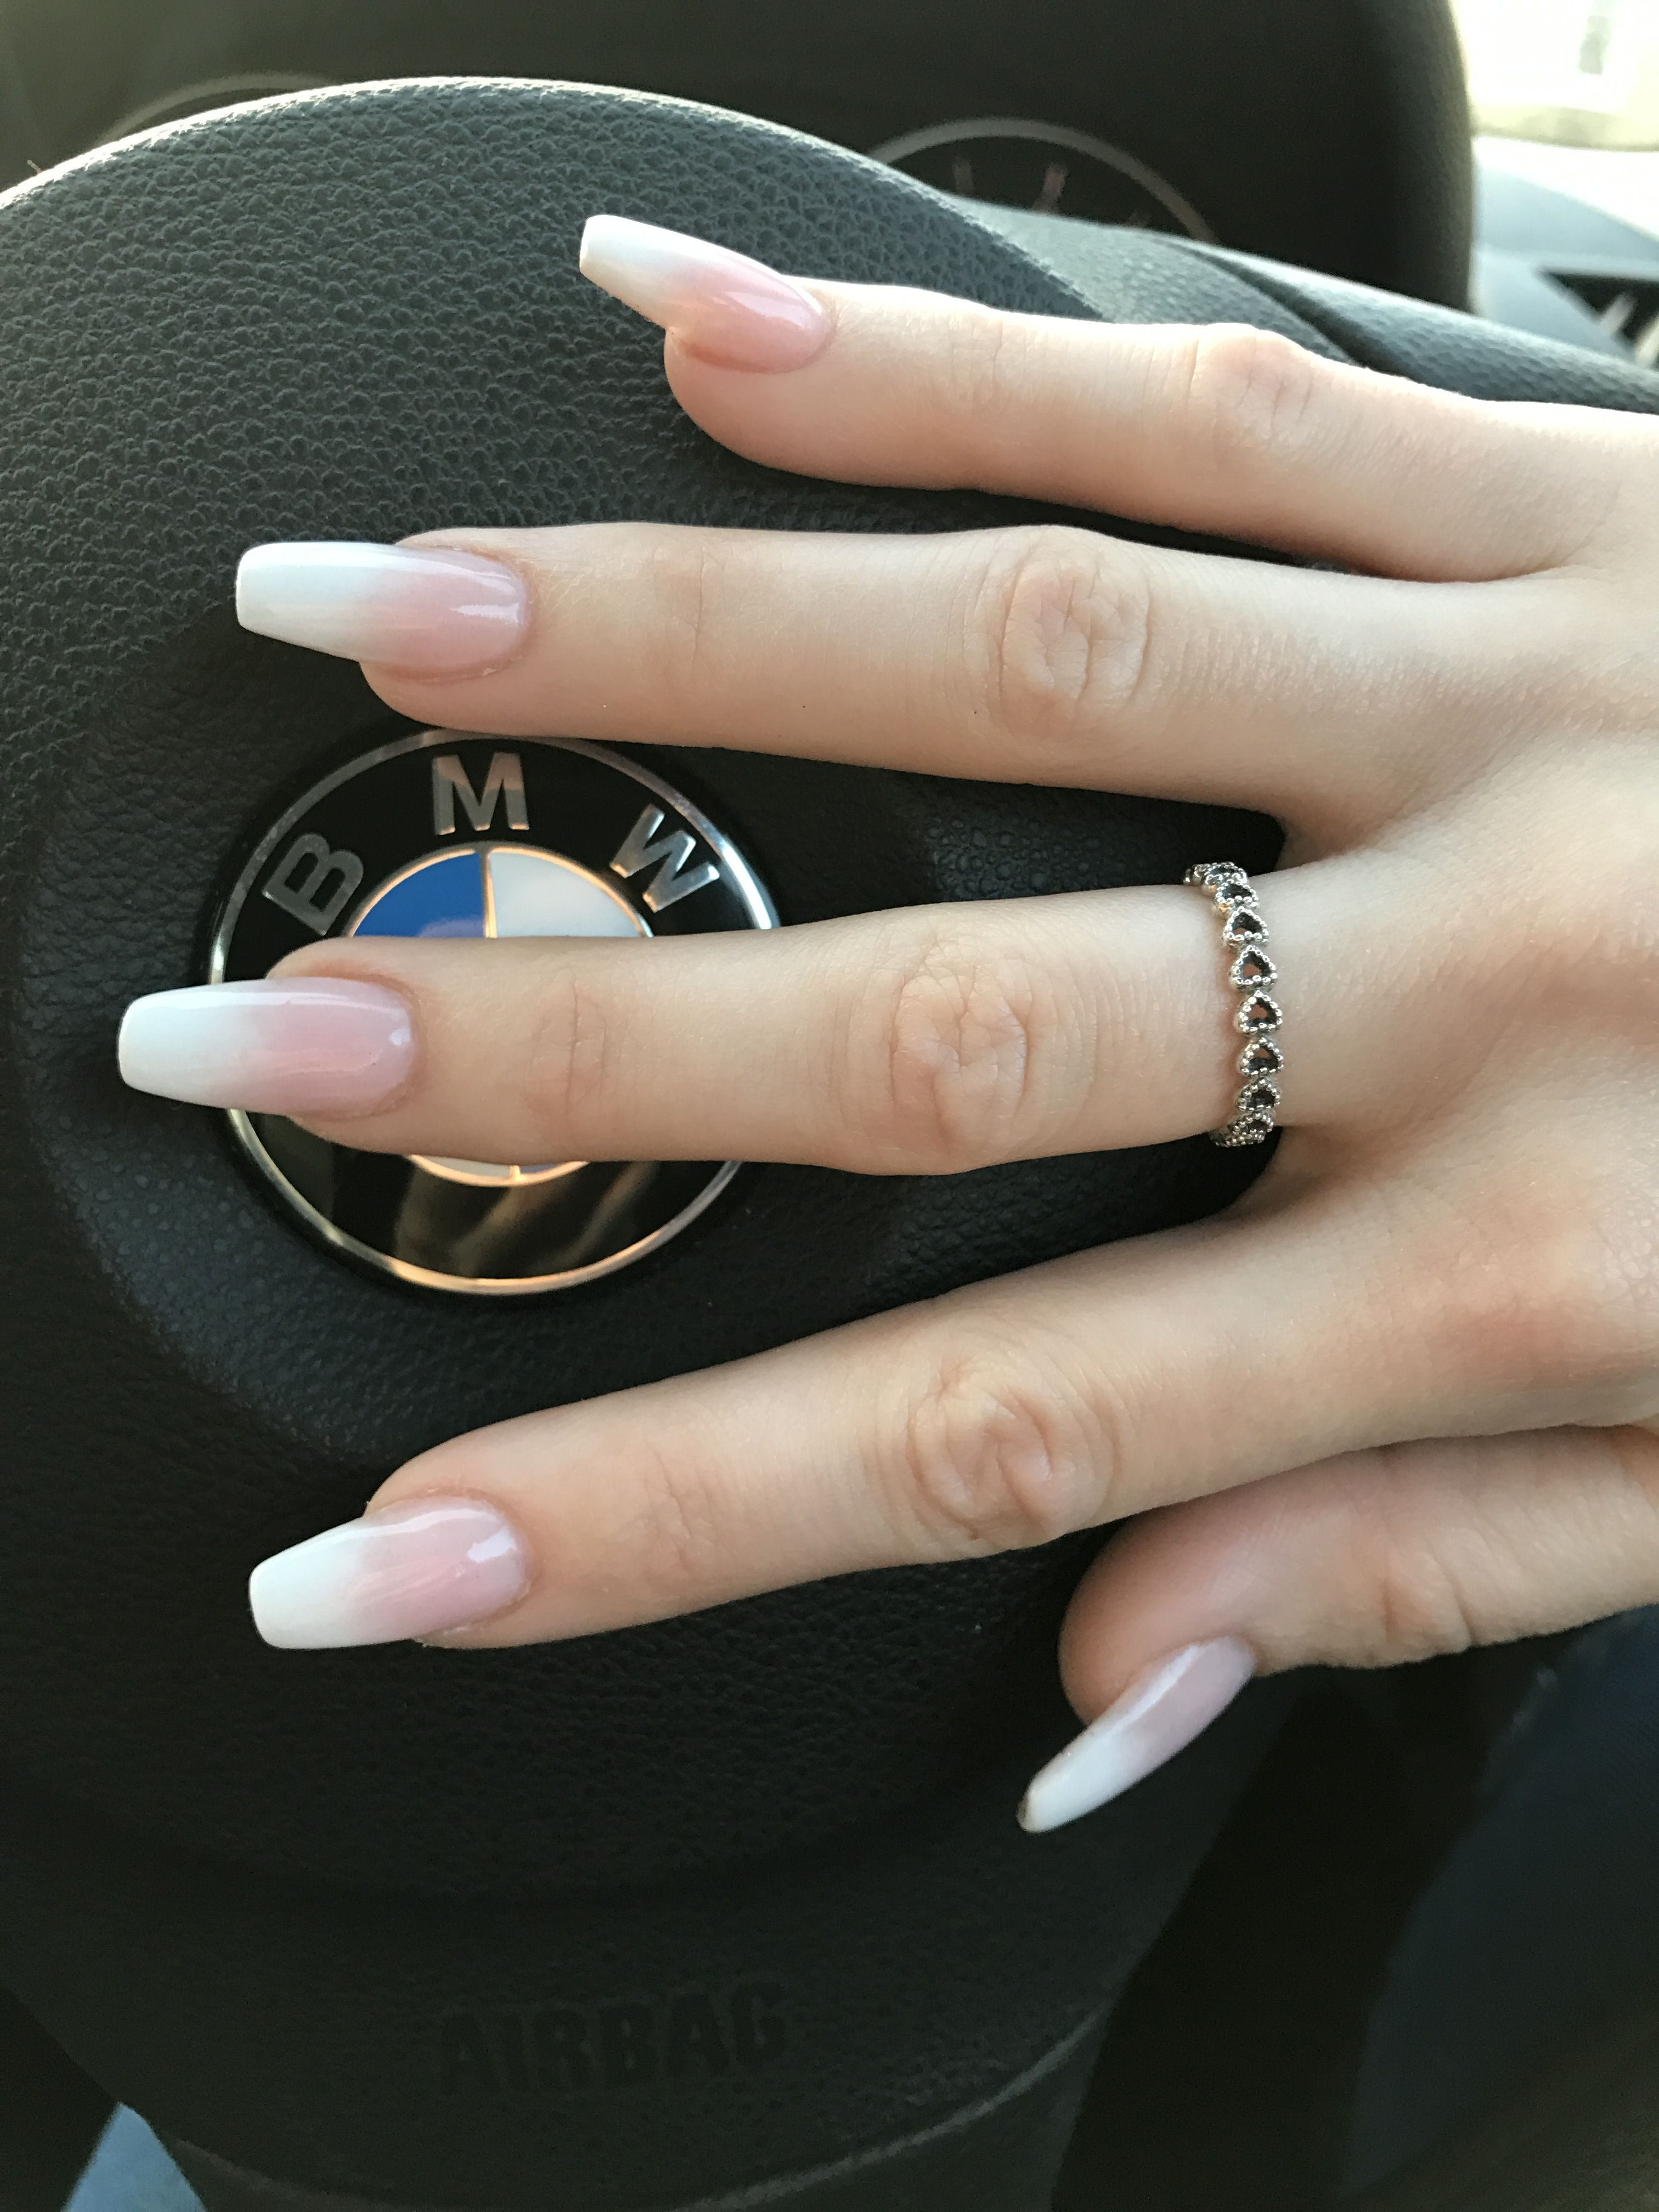 Baby boomer French ombré nails | Ombre nail designs, Ombre ...